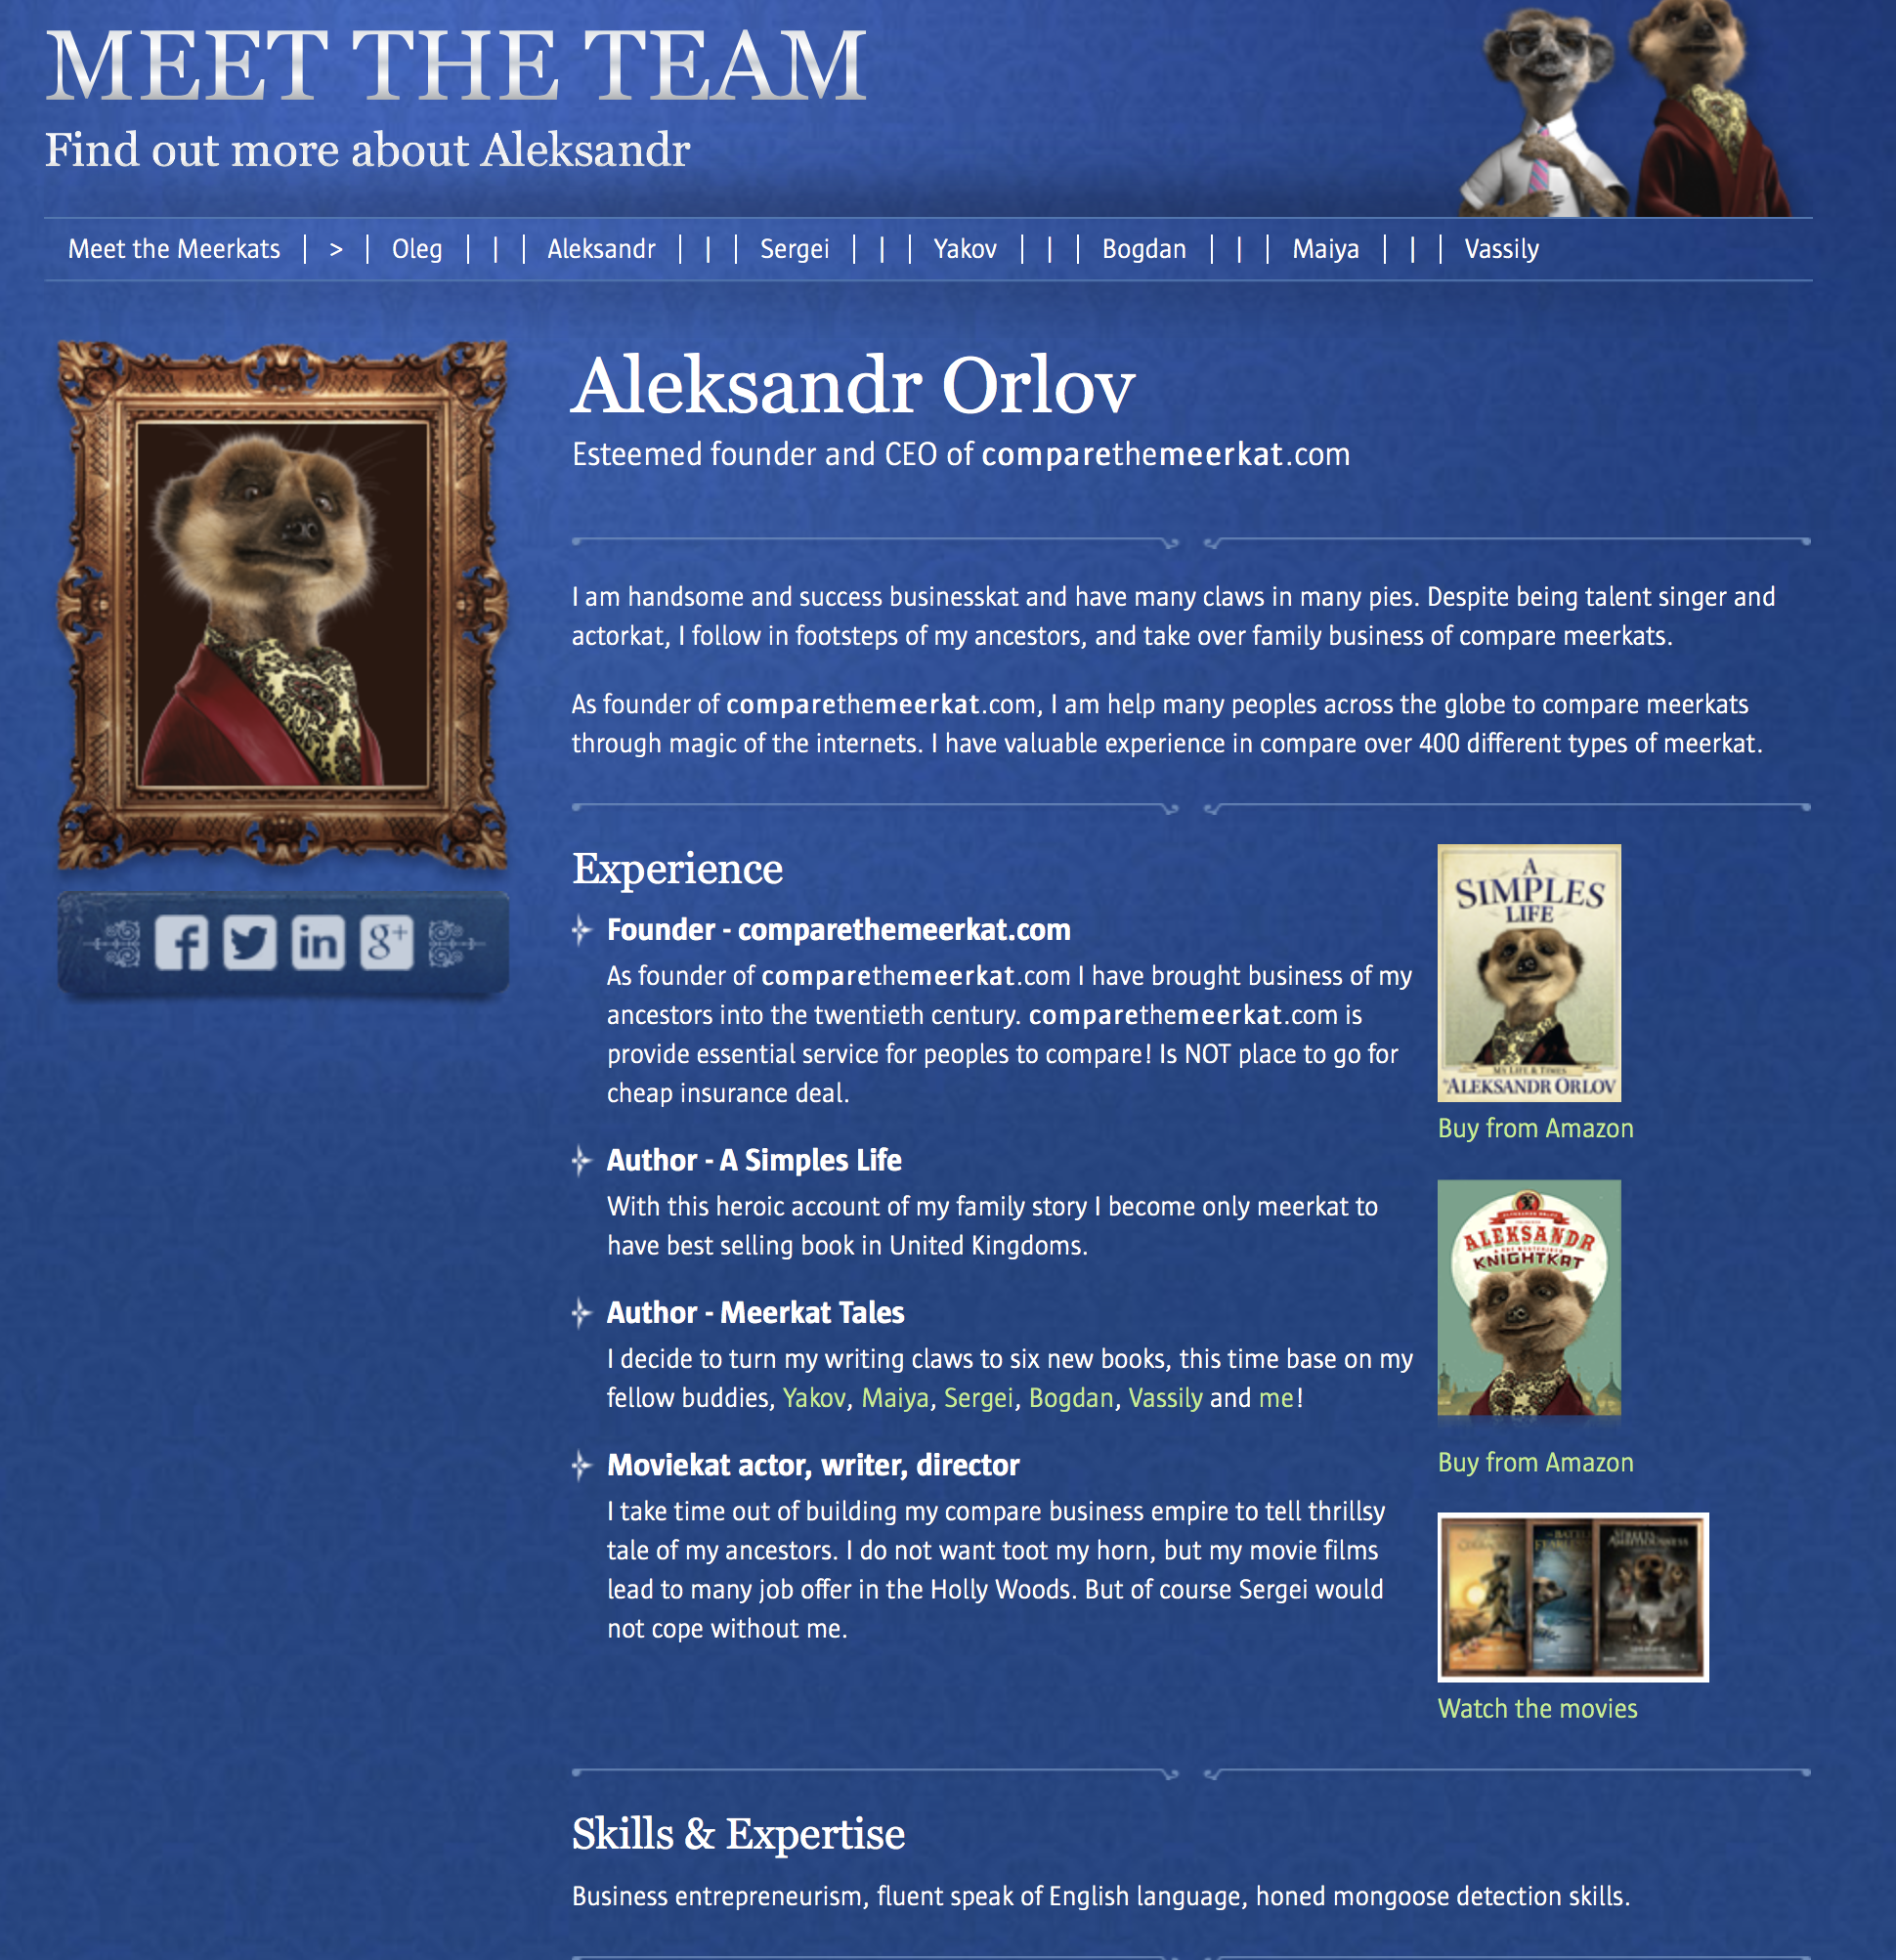 Aleksandr Meerkat's voice extends across TV advertising and website content, creating a believable personality.